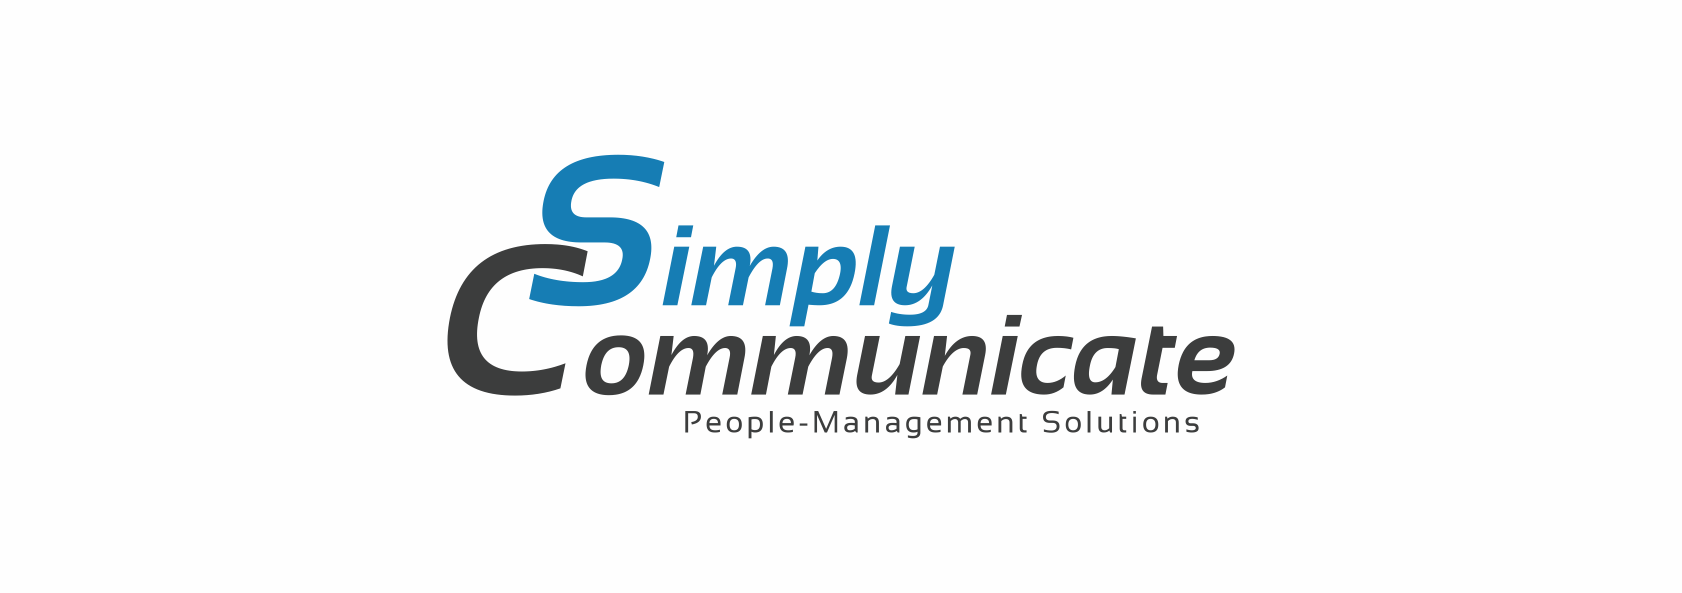 SIMPLYCOMM SS1